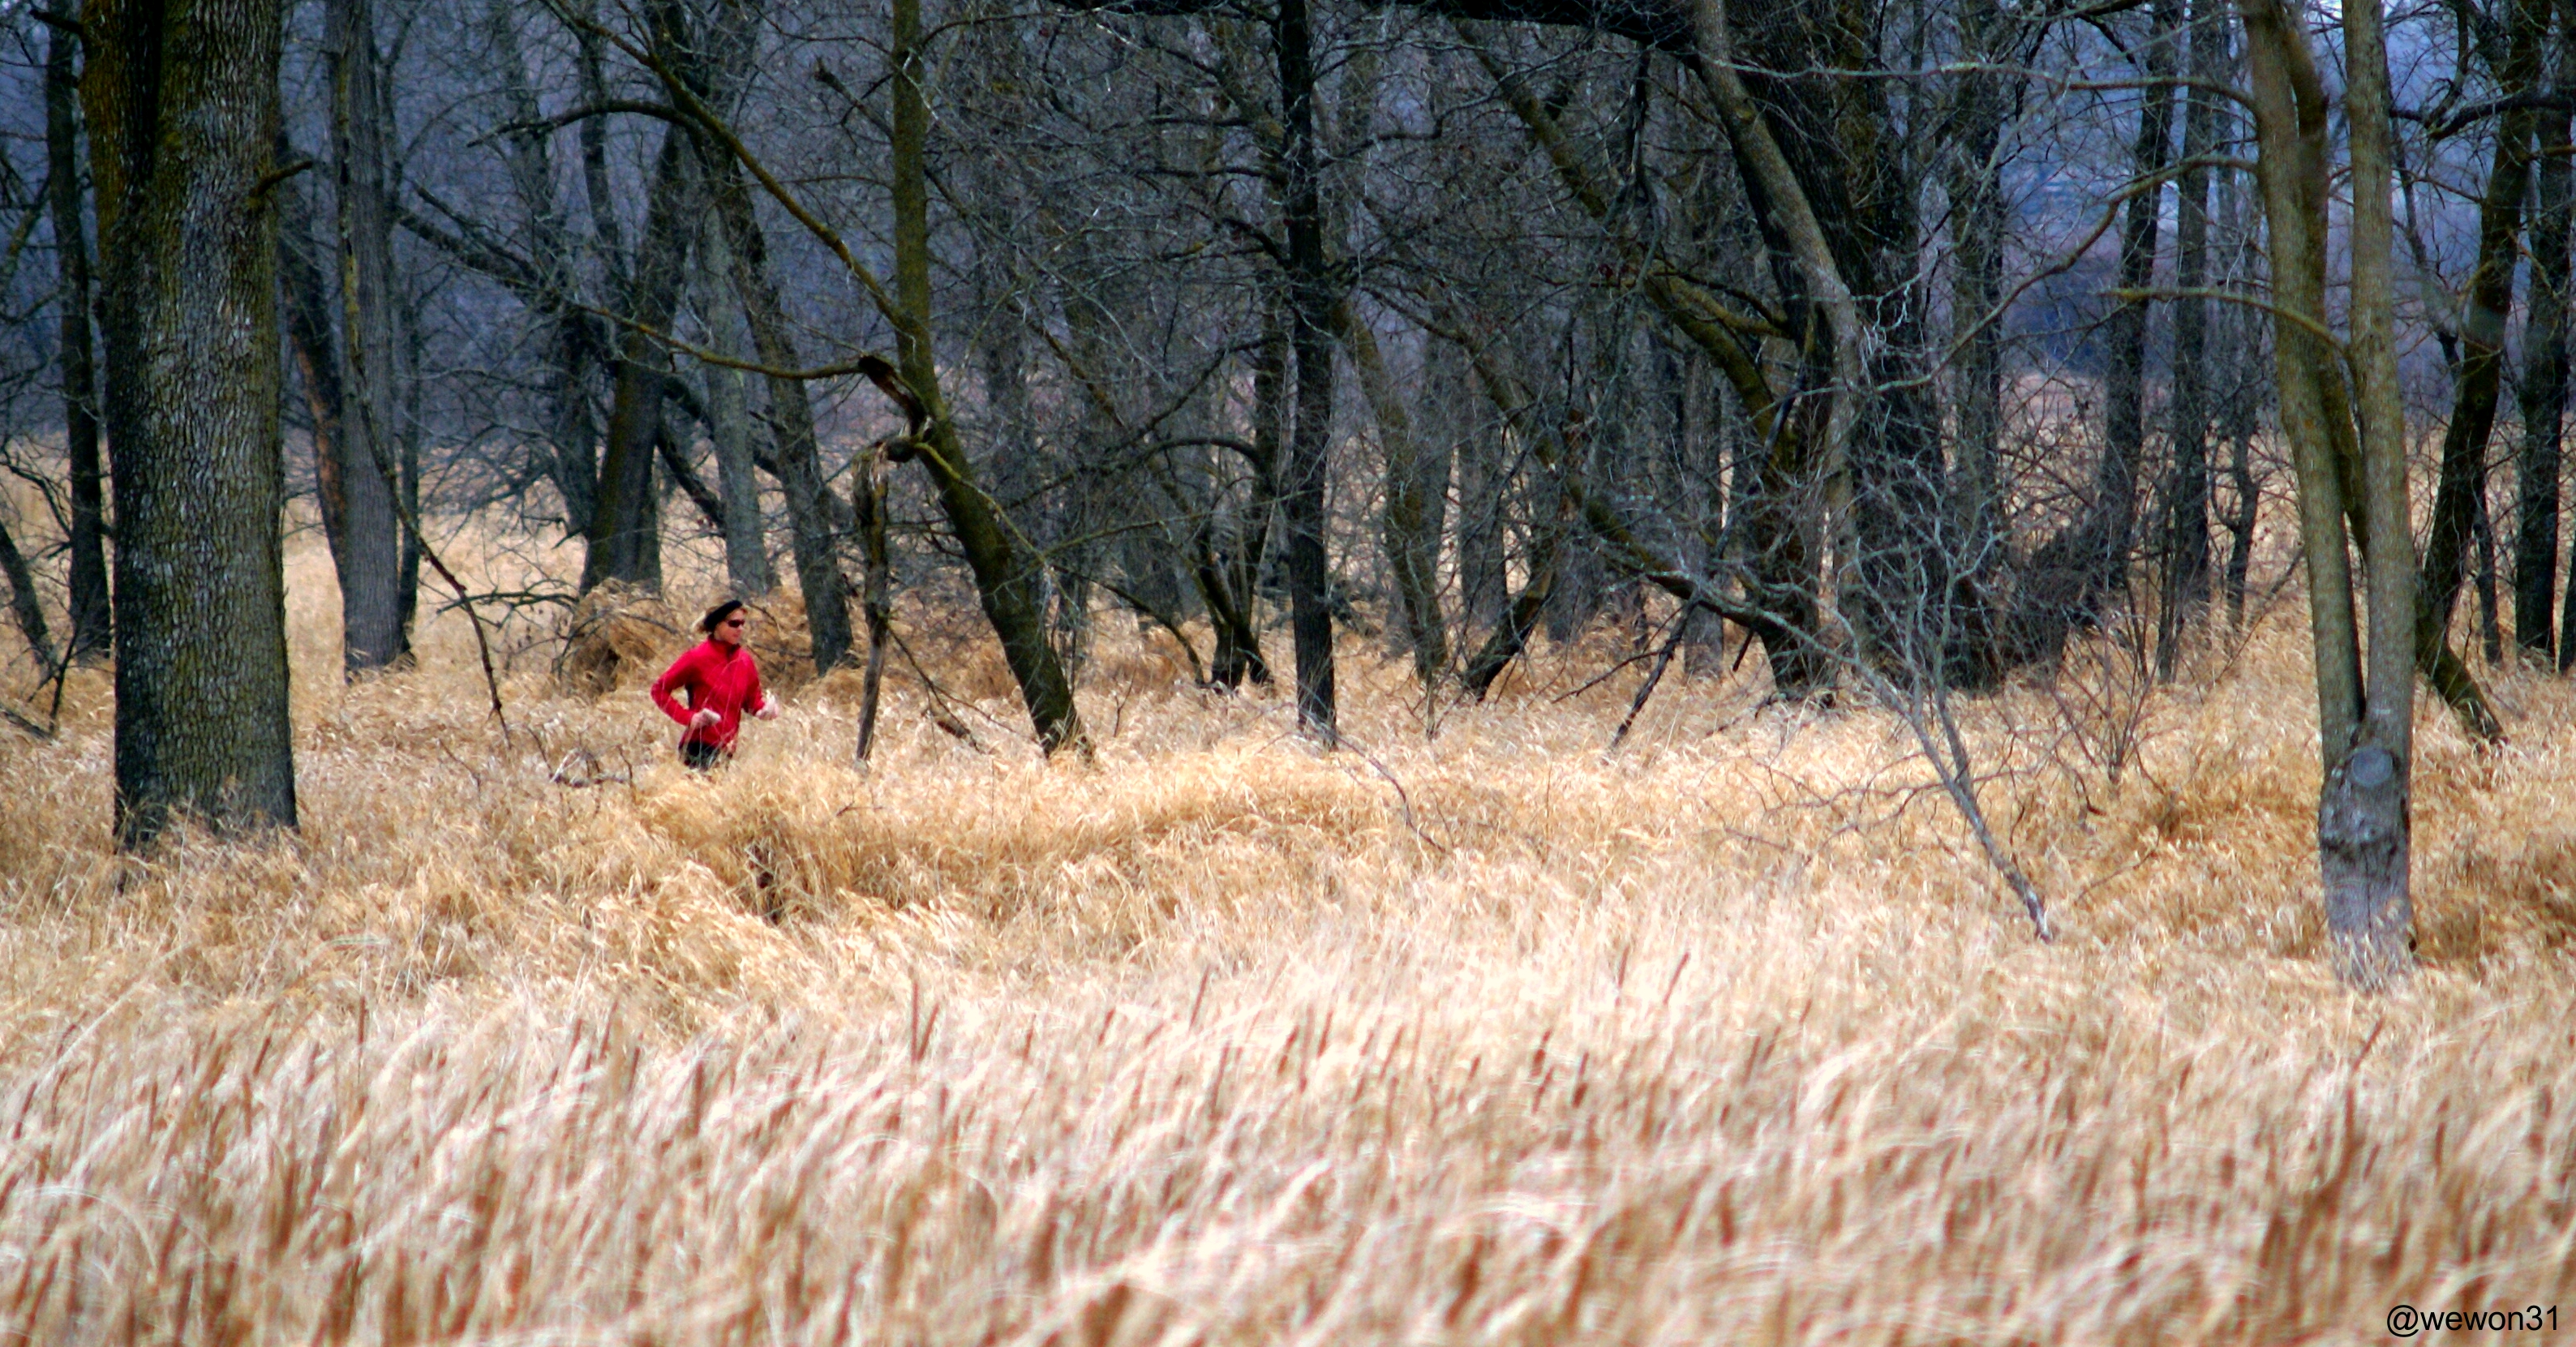 Trail runner in Brookfield Natural Area - Photo by @wewon31 (CC BY-ND 2.0)